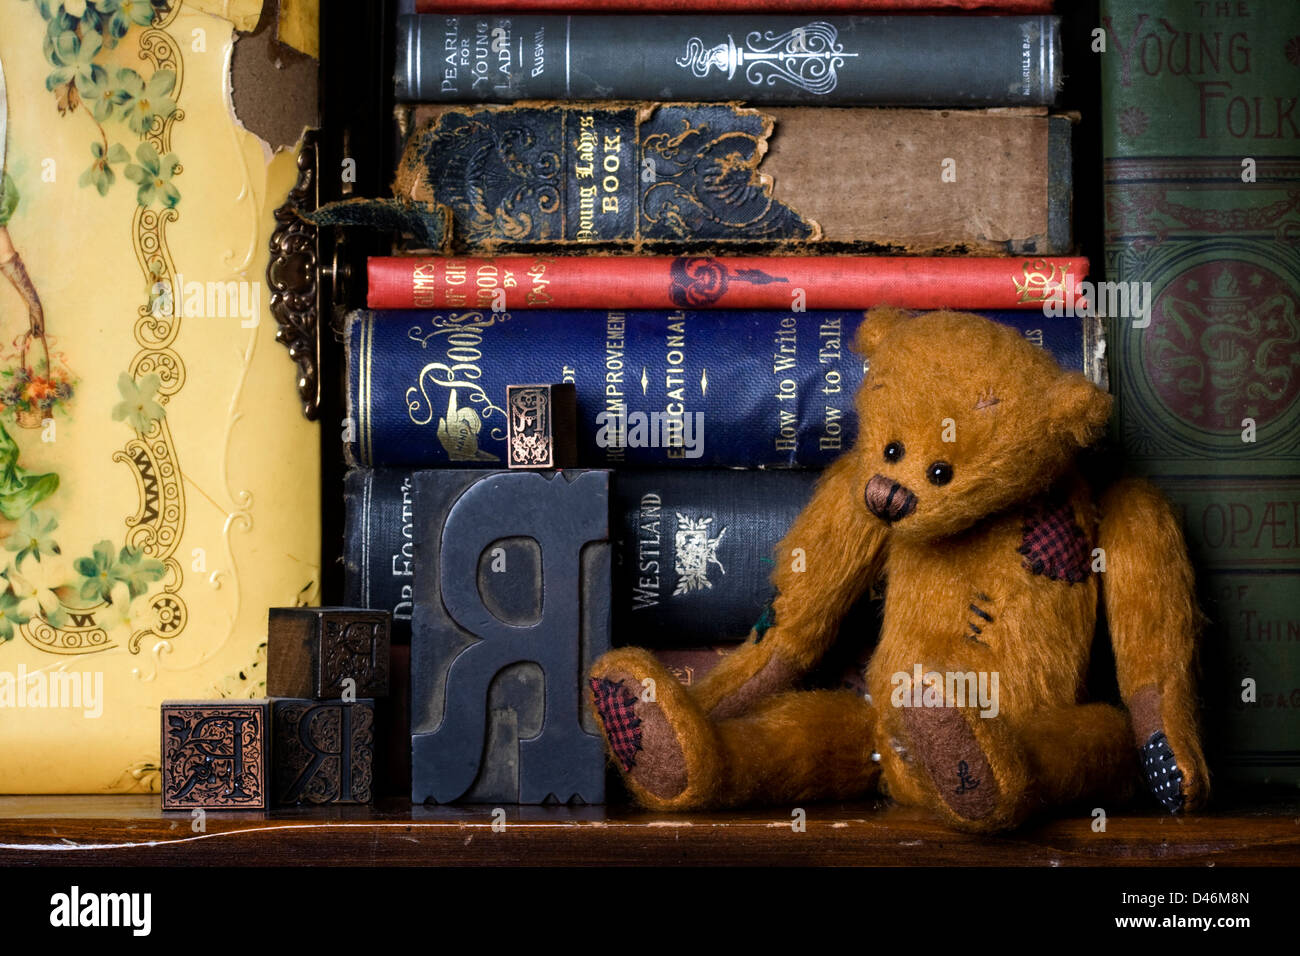 A Bookshelf Still Life Featuring Jointed Teddy Bear Antique Letter Press Letters Old Books And Victorian Photo Album